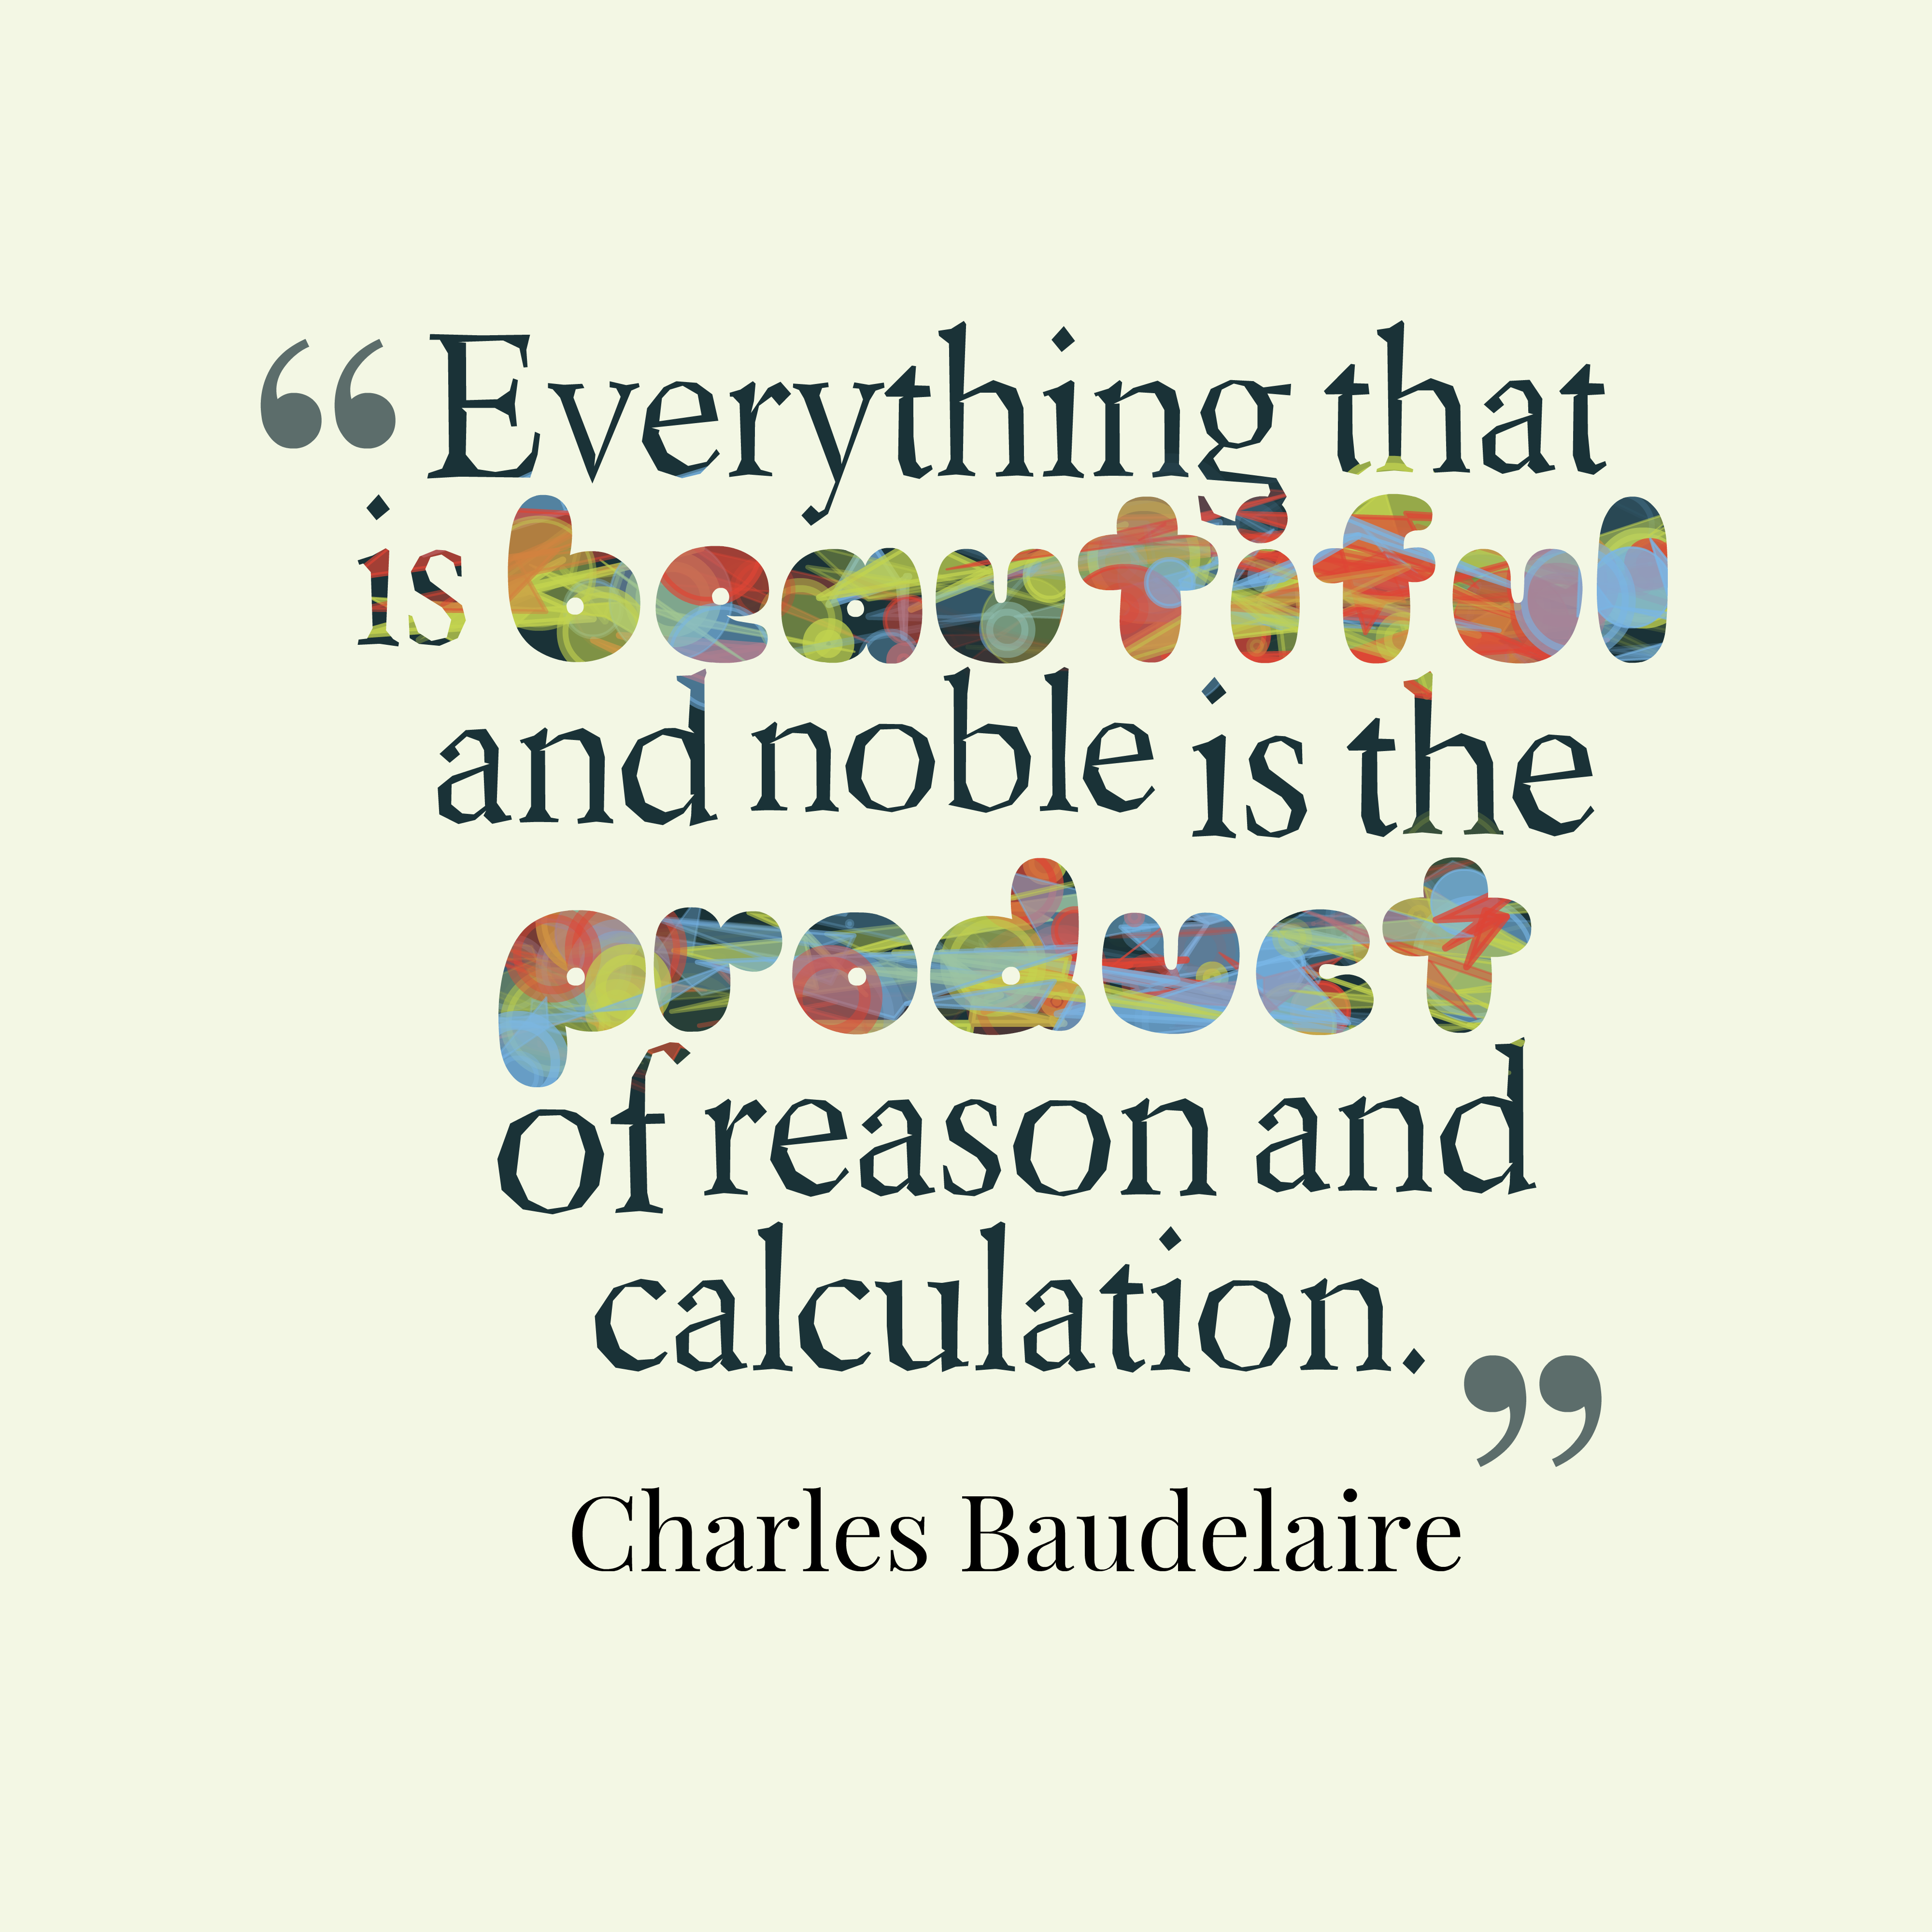 Quotes image of Everything that is beautiful and noble is the product of reason and calculation.